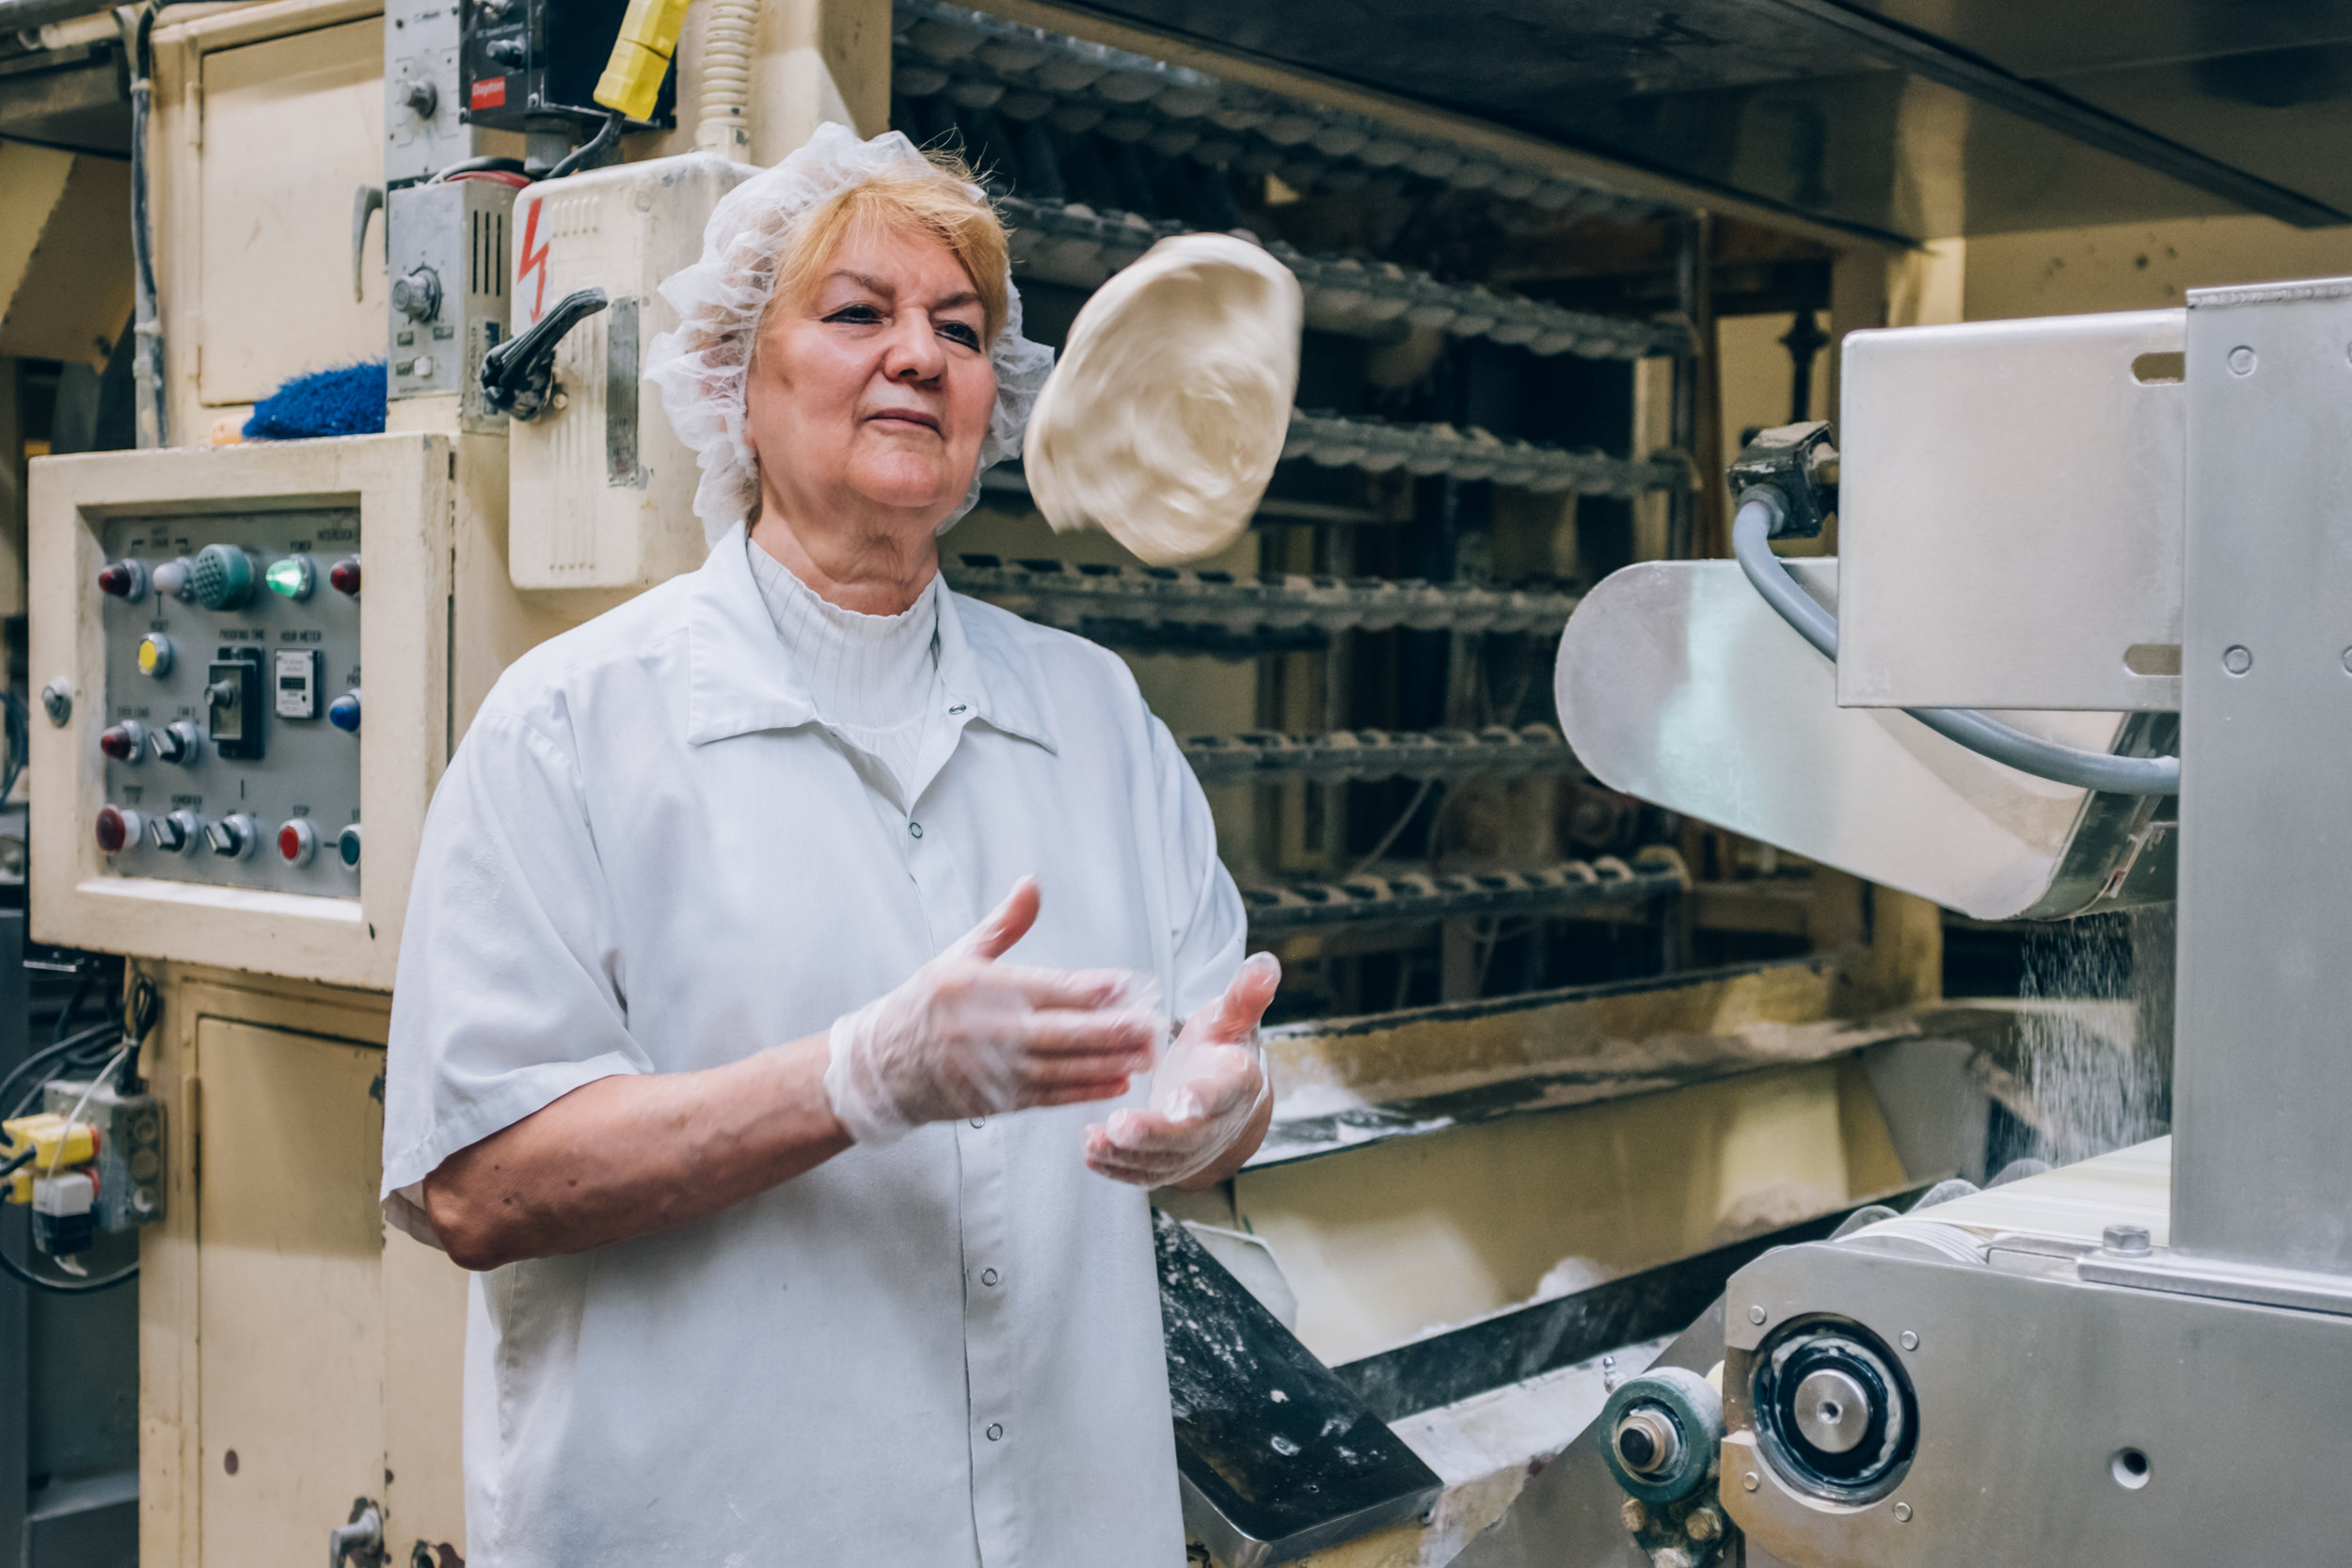 Mrs. Alexandra has been making Pita Bread here for 40 years